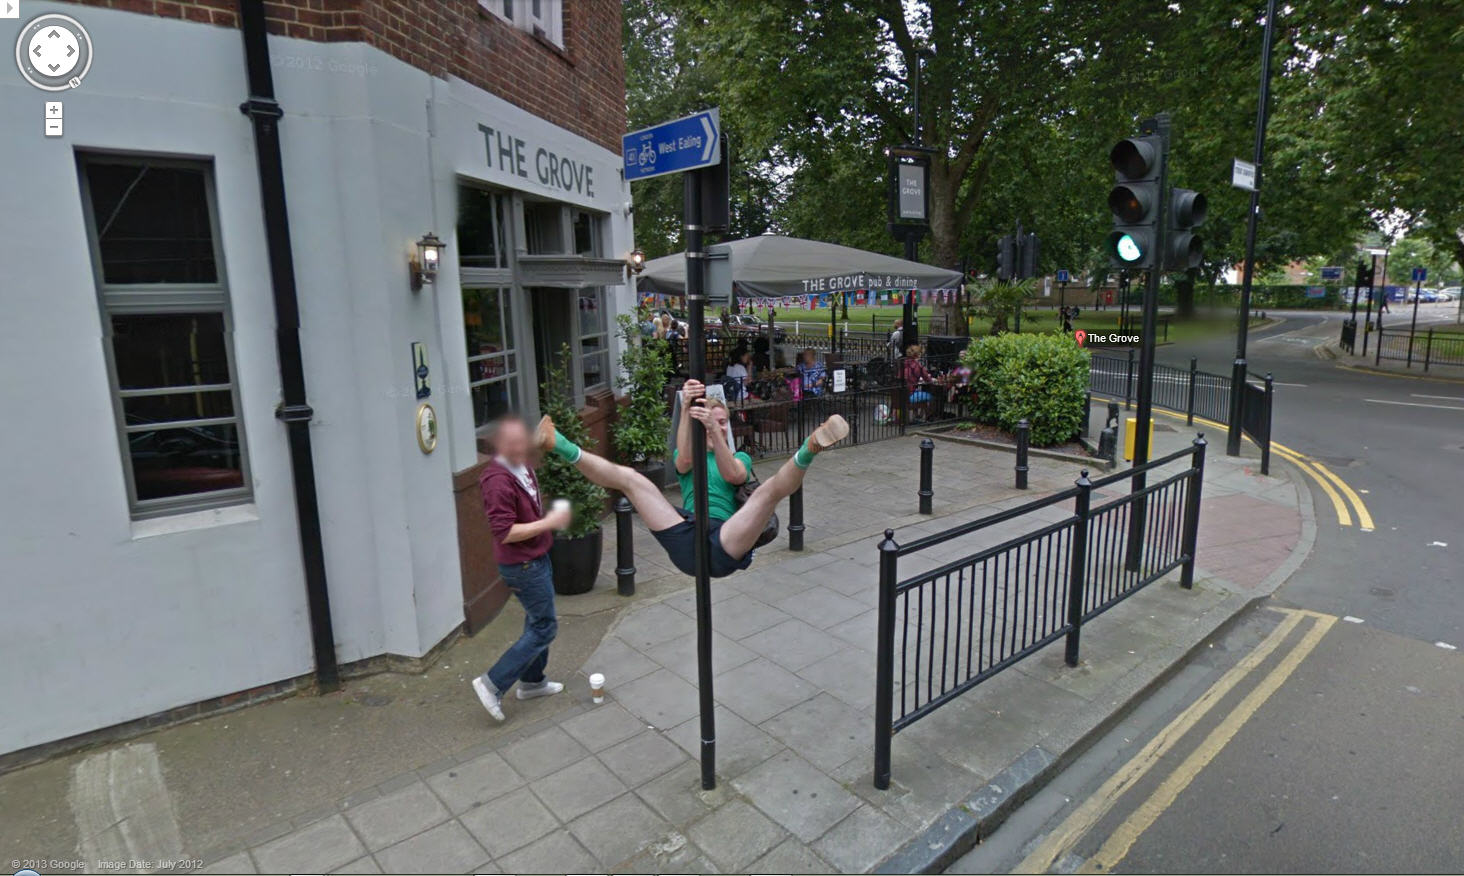 google street view pole dancer google street view world funny street view images from google. Black Bedroom Furniture Sets. Home Design Ideas